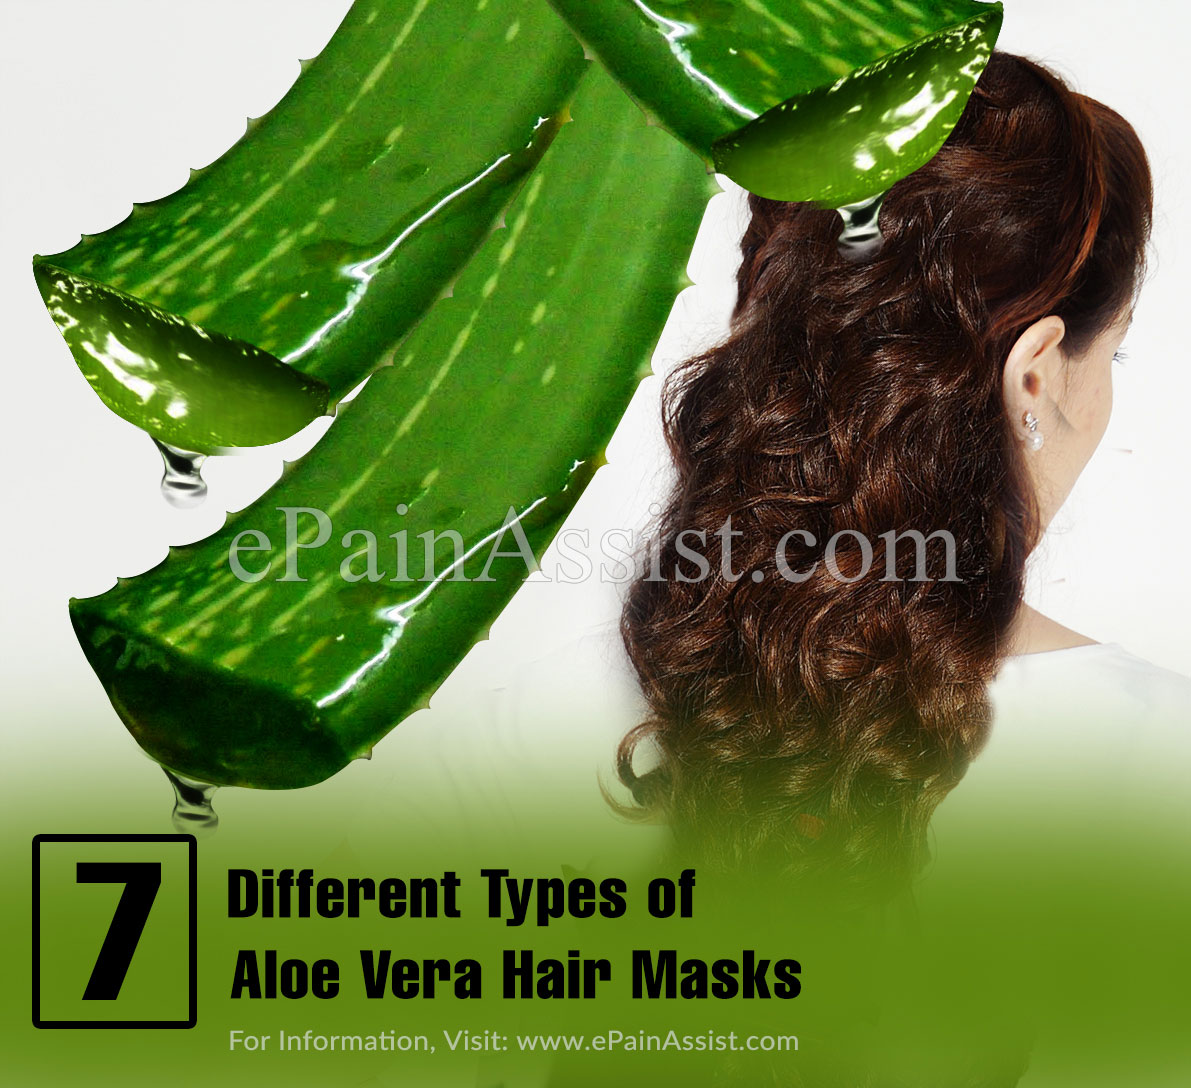 7 Different Types of Aloe Vera Hair Masks